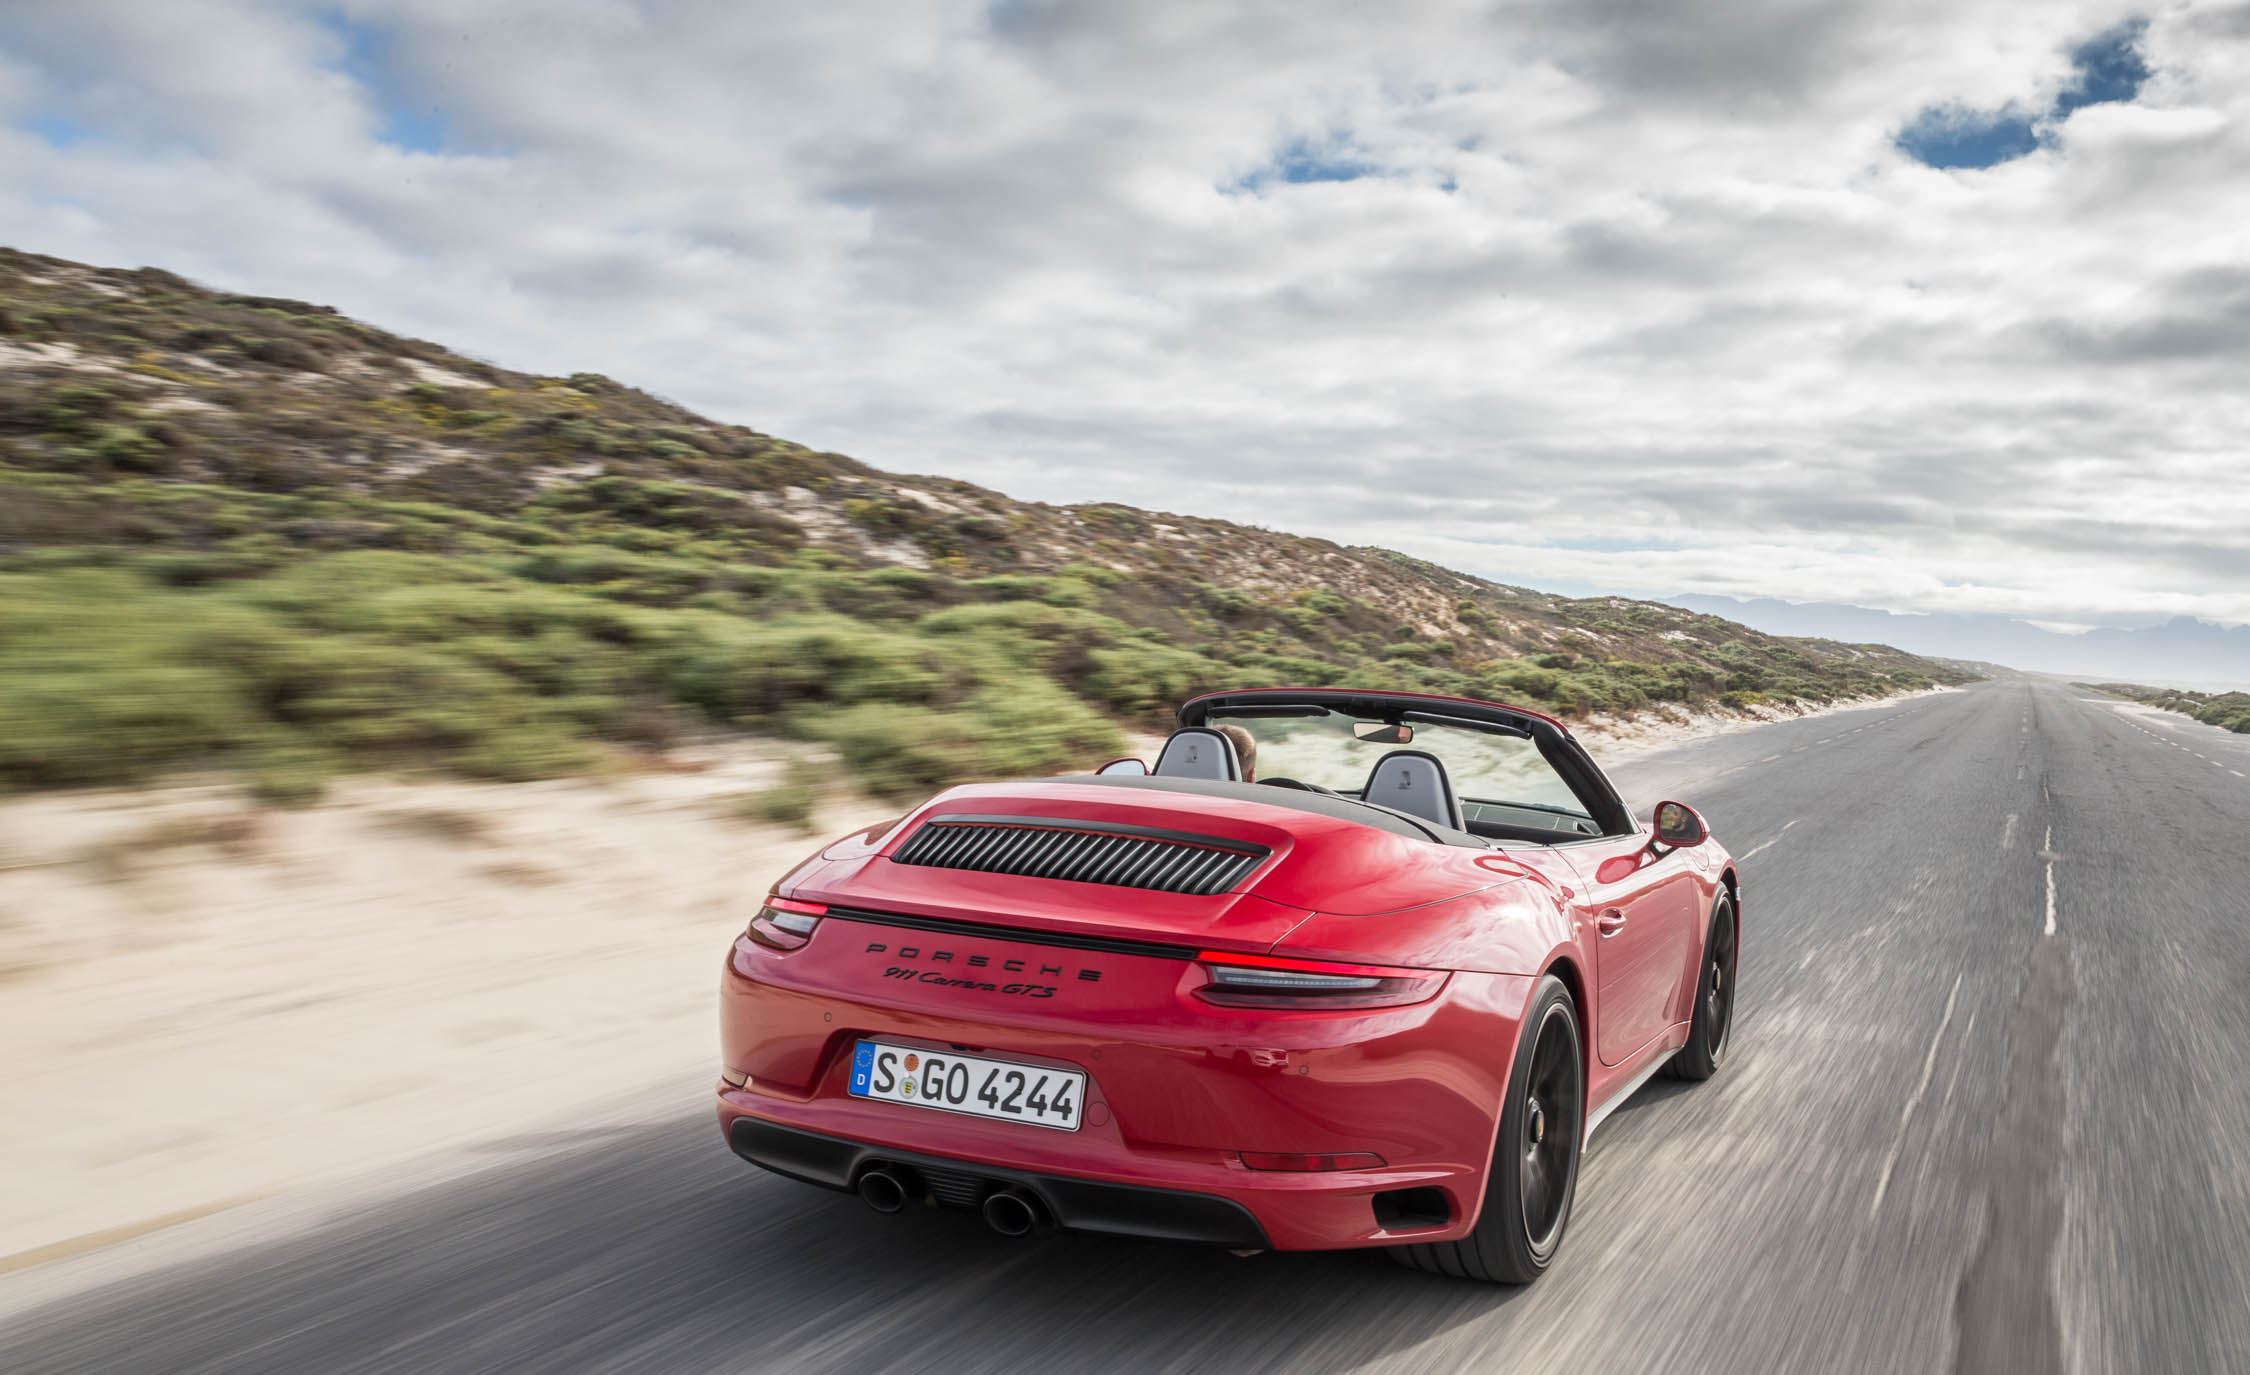 2017 Porsche 911 Carrera GTS Cabriolet Test Drive Rear View (Photo 39 of 97)